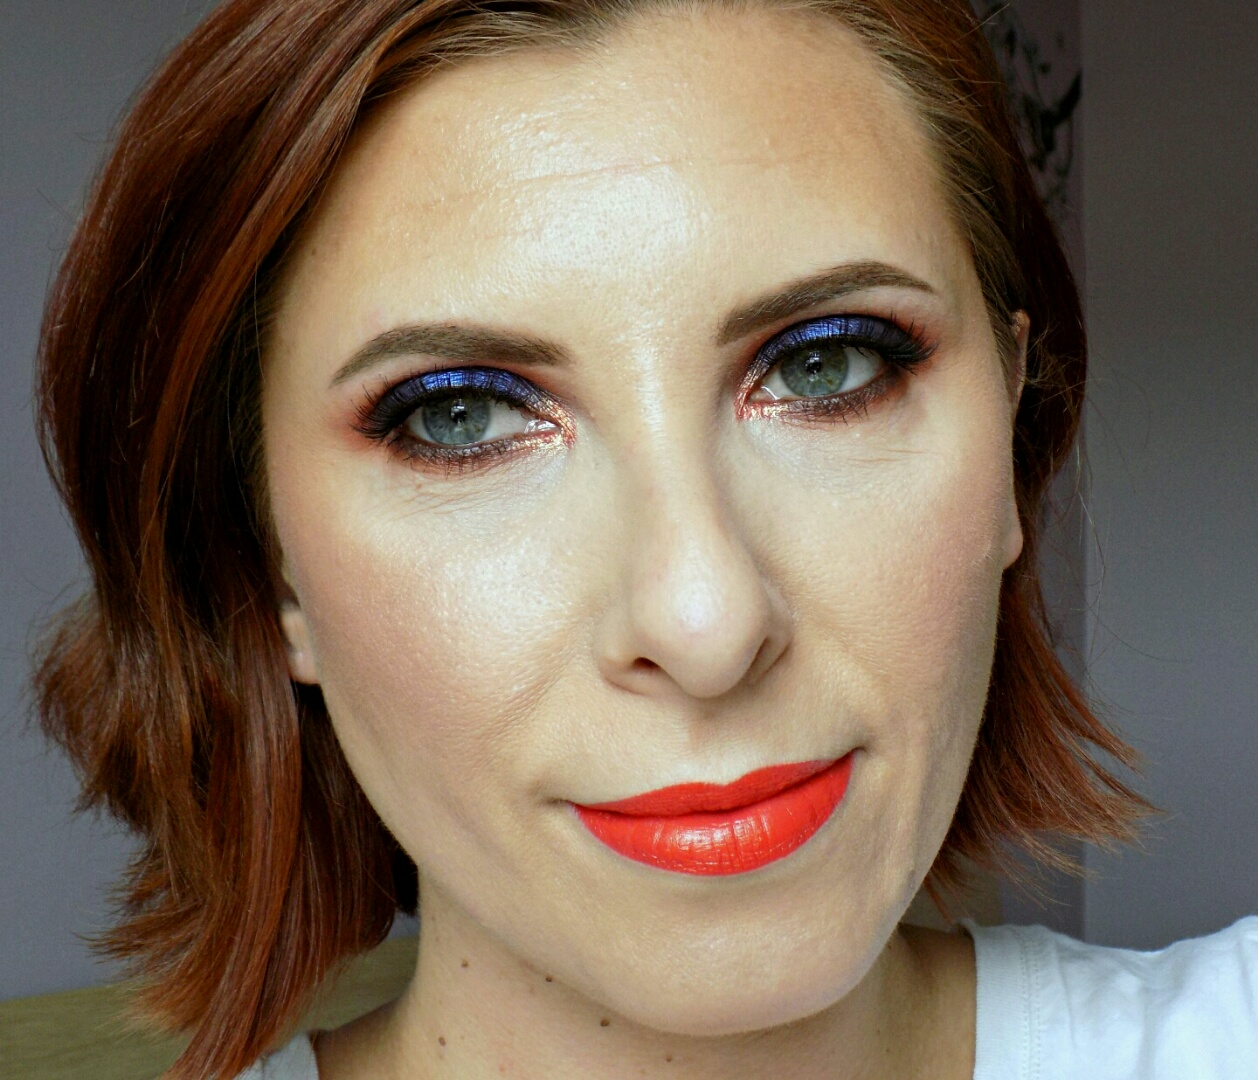 blues & oranges, fun Summer makeup look